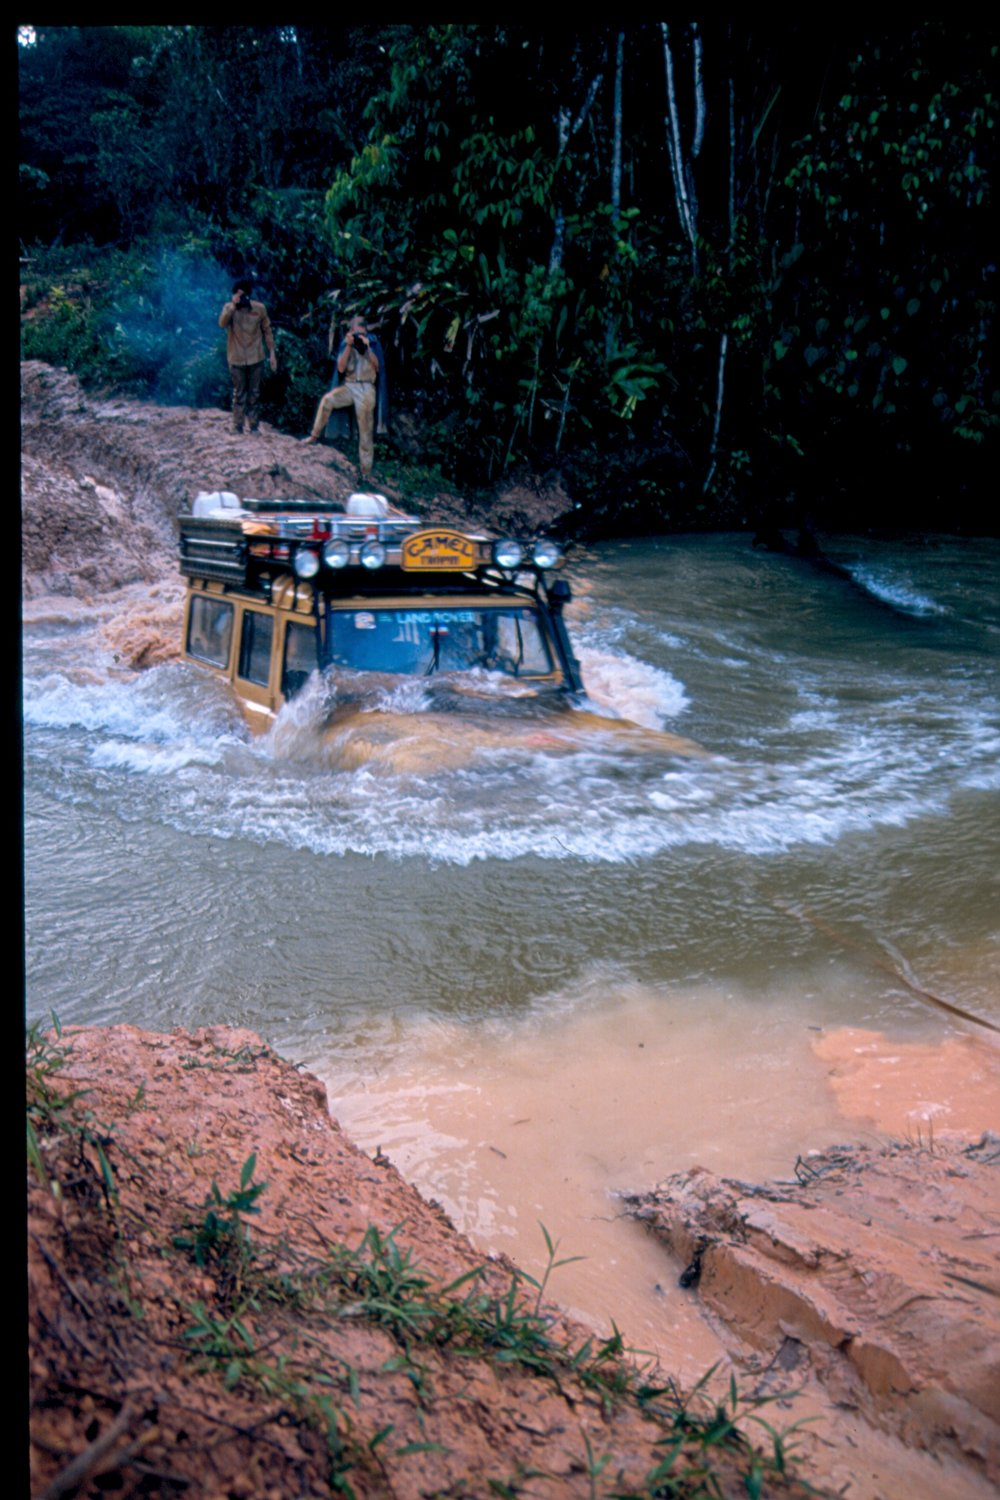 With non-electronically controlled turbodiesel engines and well-sealed snorkels, vehicles such as this Camel Trophy Land Rover 110 are capable of fording very deep water indeed. Courtesy Pete Sweetser/Camel Trophy Owners' Club